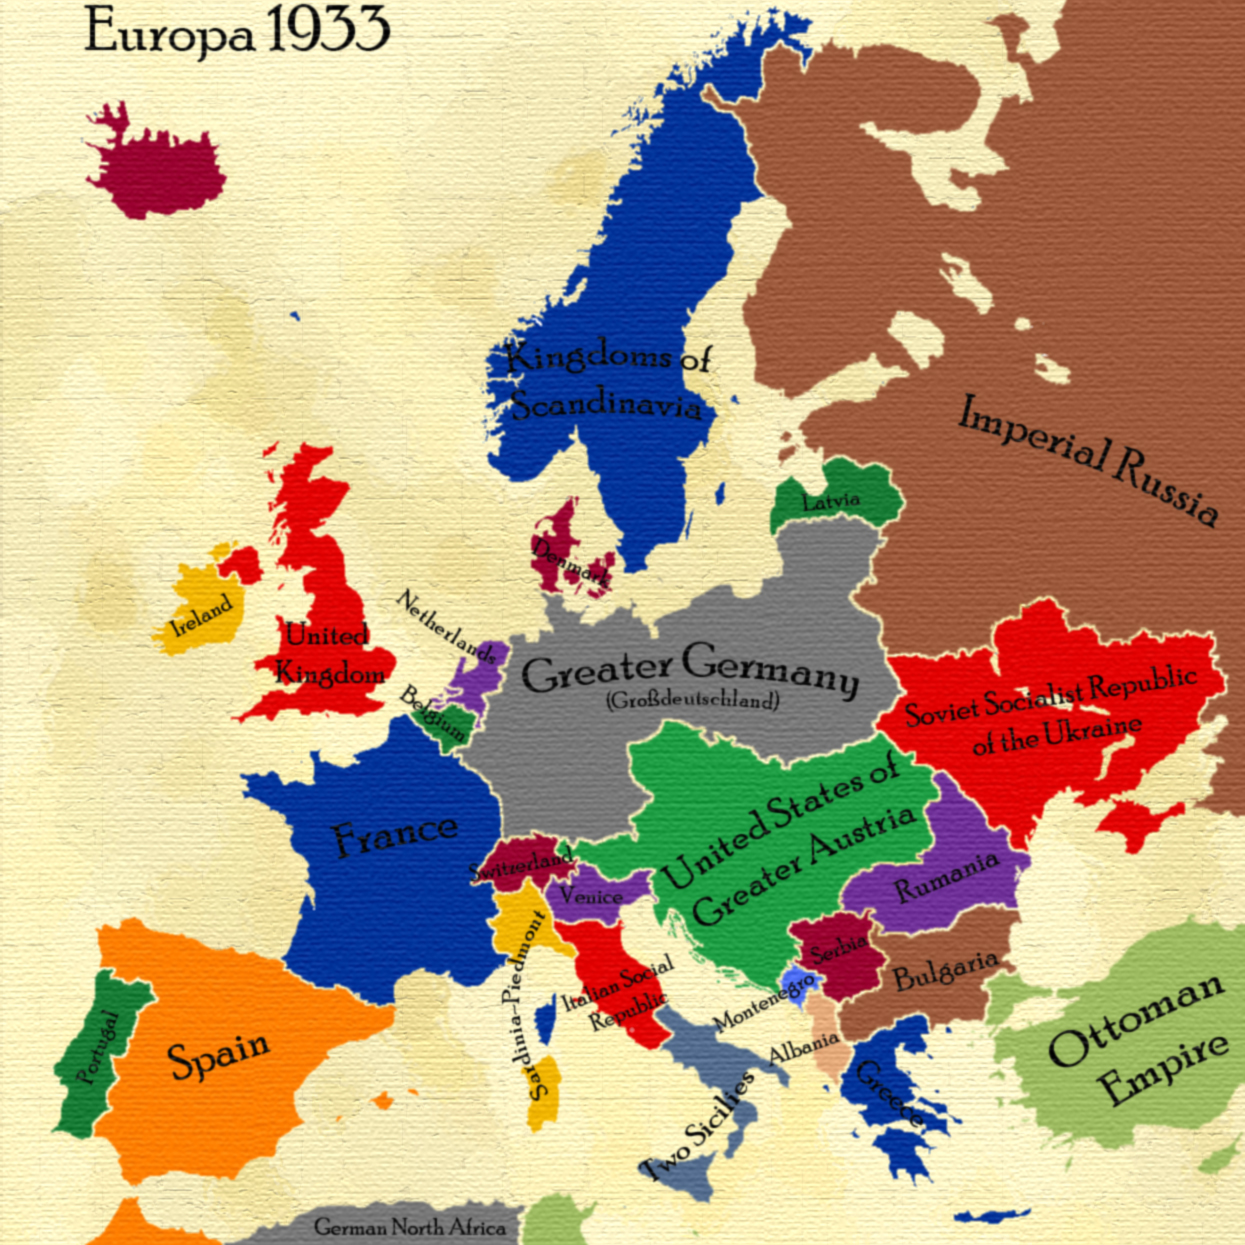 AltHist Europe Map 1933 by DaemonofDecay on DeviantArt on black population of europe, ethnic problems in africa, ethnic groups of europe, catholic europe, alternate future of europe, ethnic albania, customs and traditions in europe, ethnic conflict africa, ethnic cleansing of bosnia, first people of europe, examples of devolution in europe, far right in europe, current political map europe, racial types of europe, people of northern europe, ethnicities of europe, historical maps of europe, ethnic breakdown of belgium, german language map europe, balkan map europe,